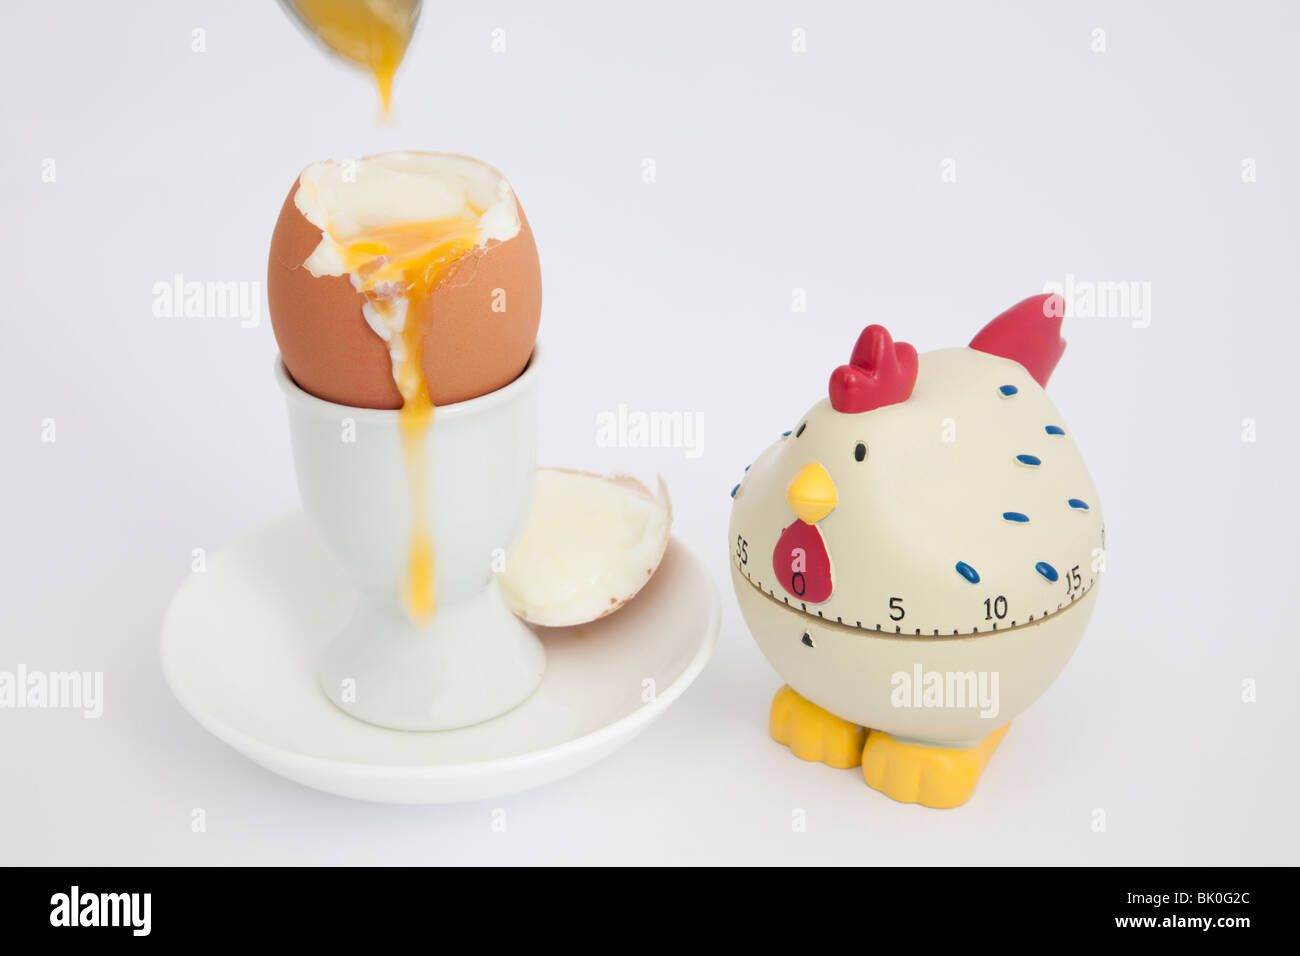 Chicken egg timer with an open soft boiled egg with runny yolk in an egg cup on a white background - Stock Image